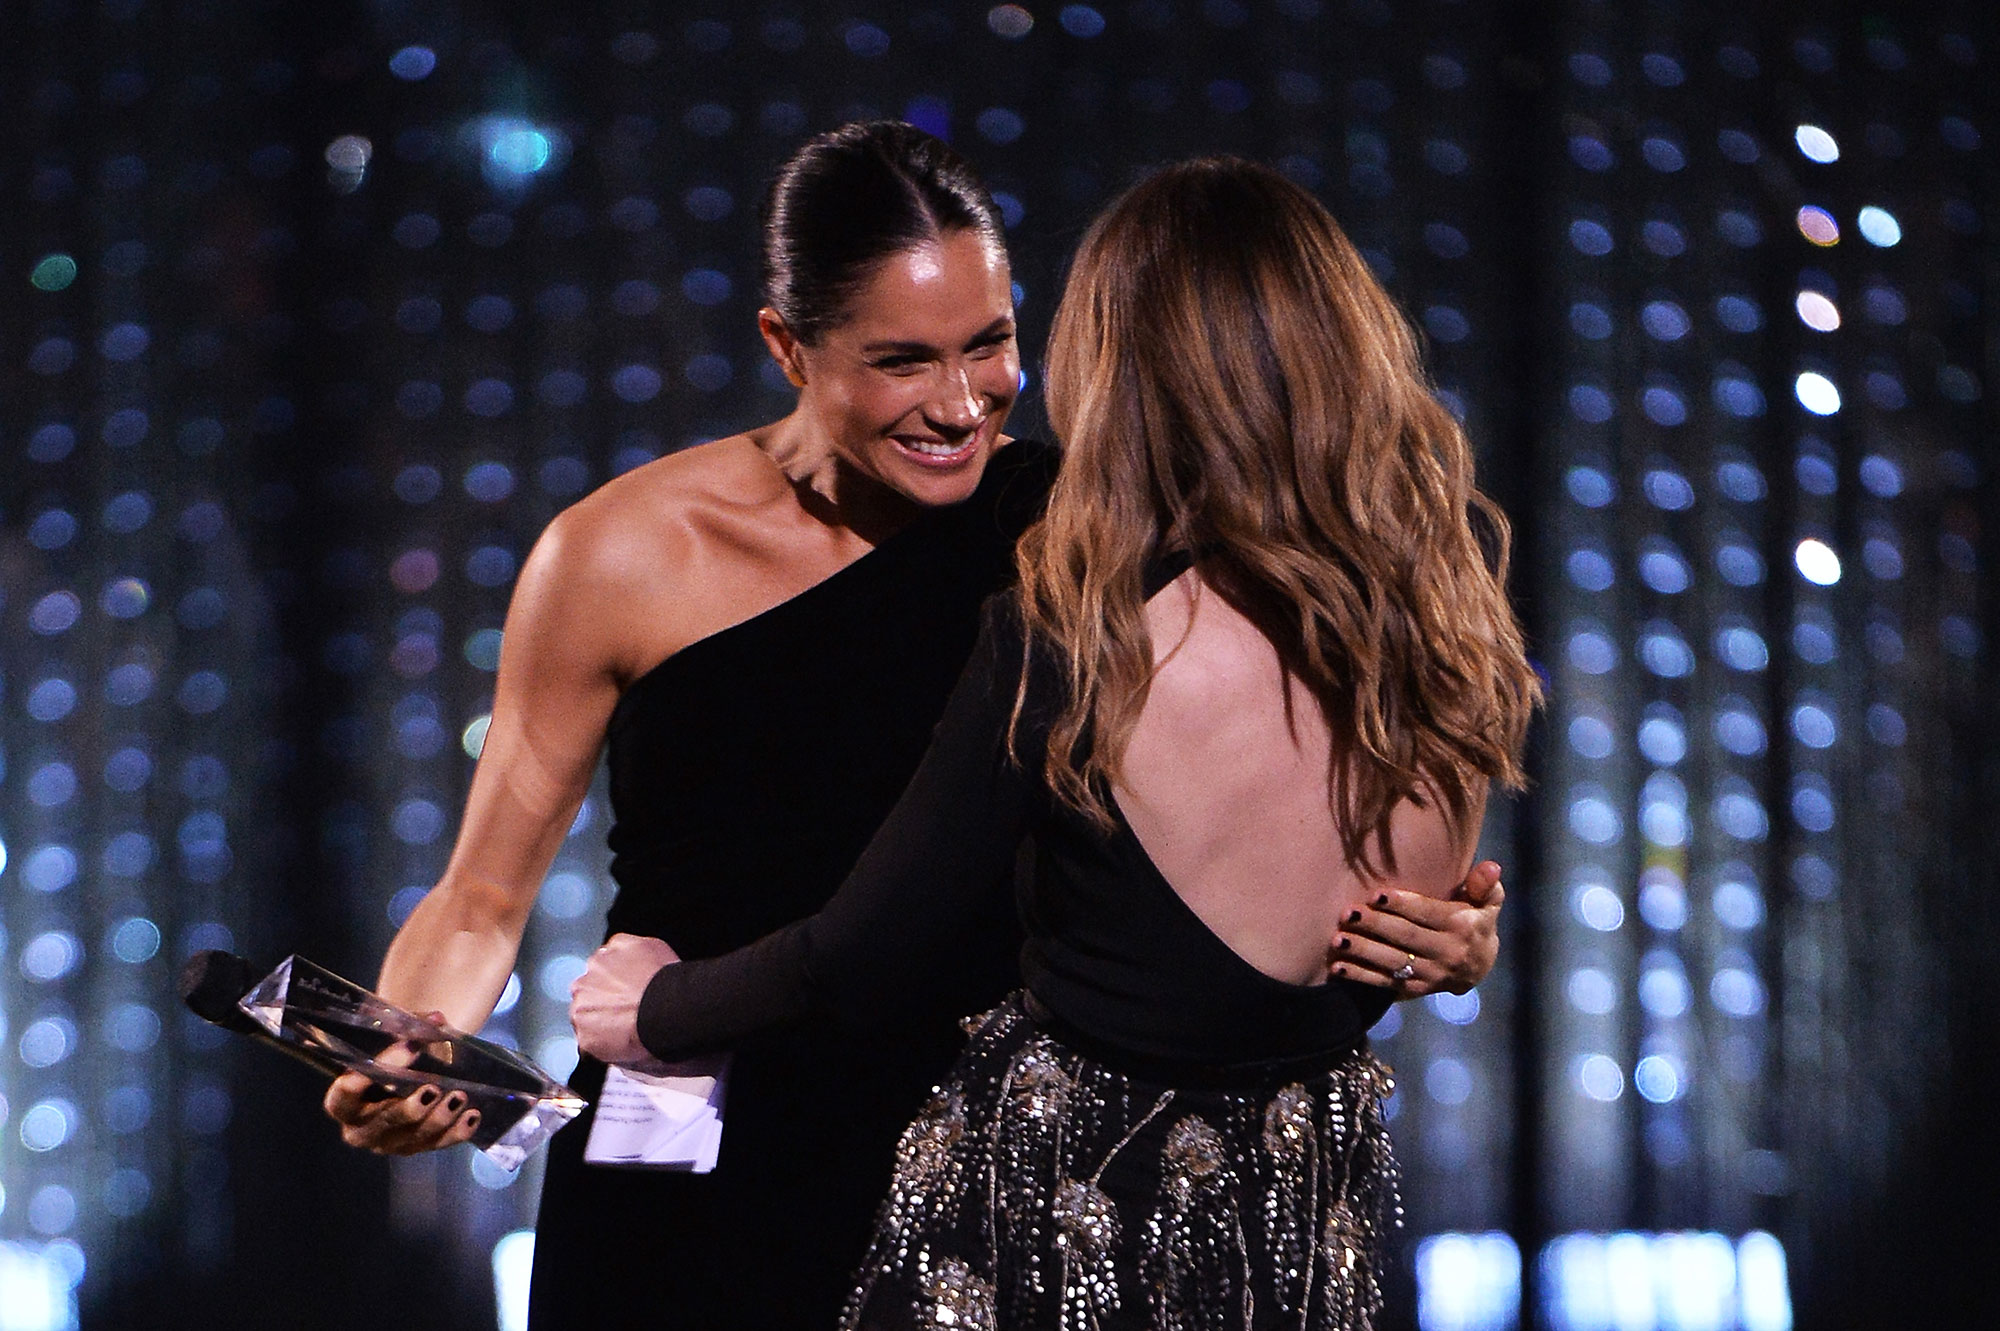 """<div class=""""meta image-caption""""><div class=""""origin-logo origin-image none""""><span>none</span></div><span class=""""caption-text"""">Meghan, Duchess of Sussex presents the award for British Designer of the Year Womenswear Award to Clare Waight Keller for Givenchy during The Fashion Awards 2018. (Jeff Spicer/BFC/Getty Images)</span></div>"""